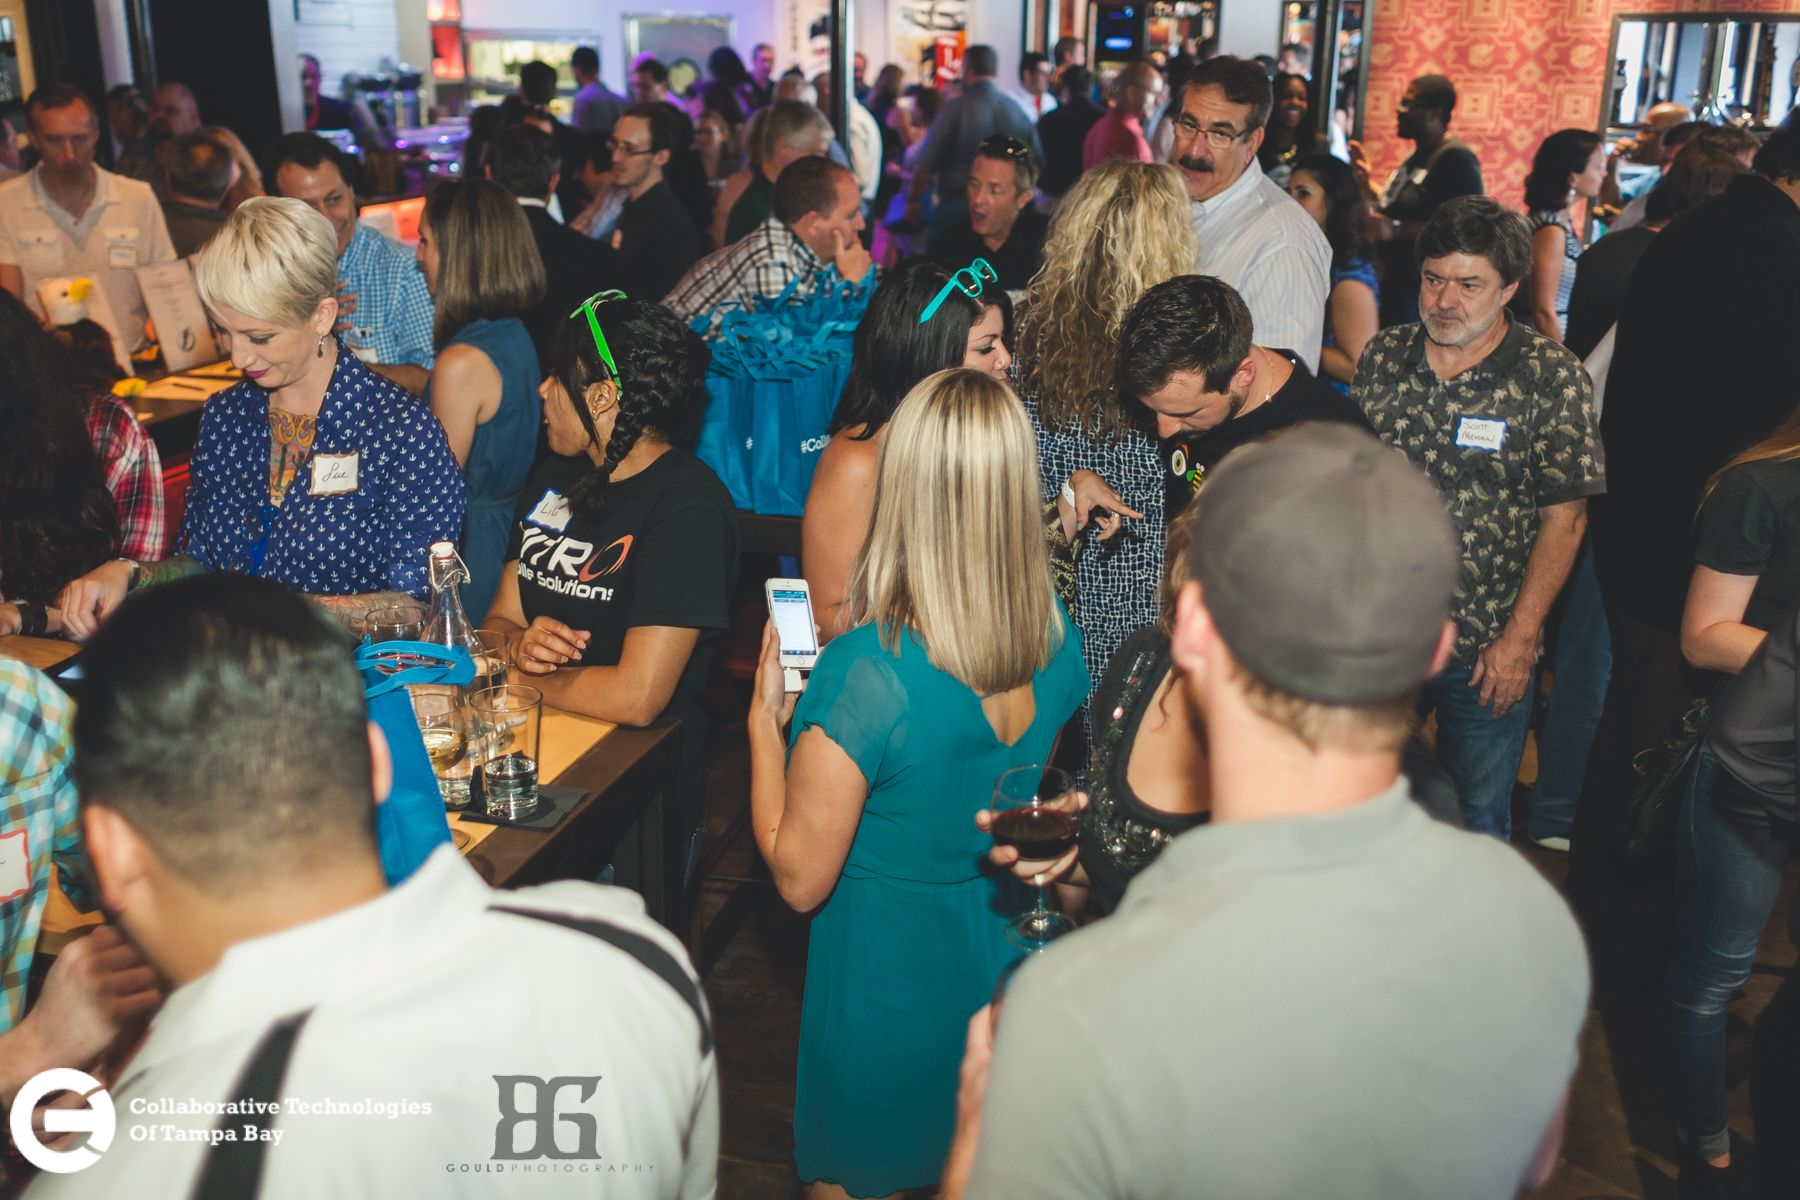 Tampa Bay Tech Events